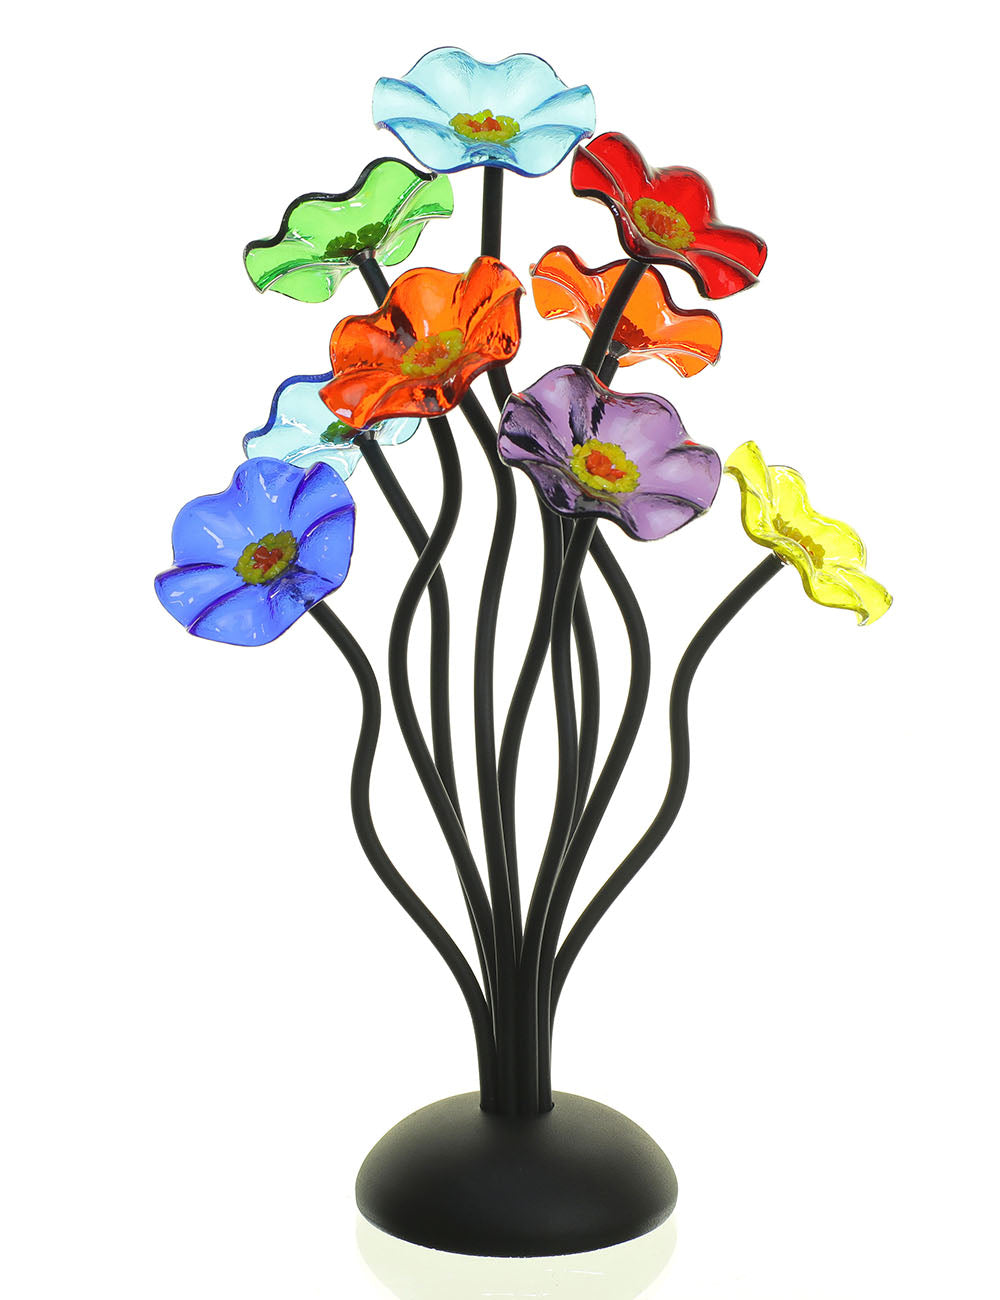 9 flower Prism - Glass Flowers by Scott Johnson